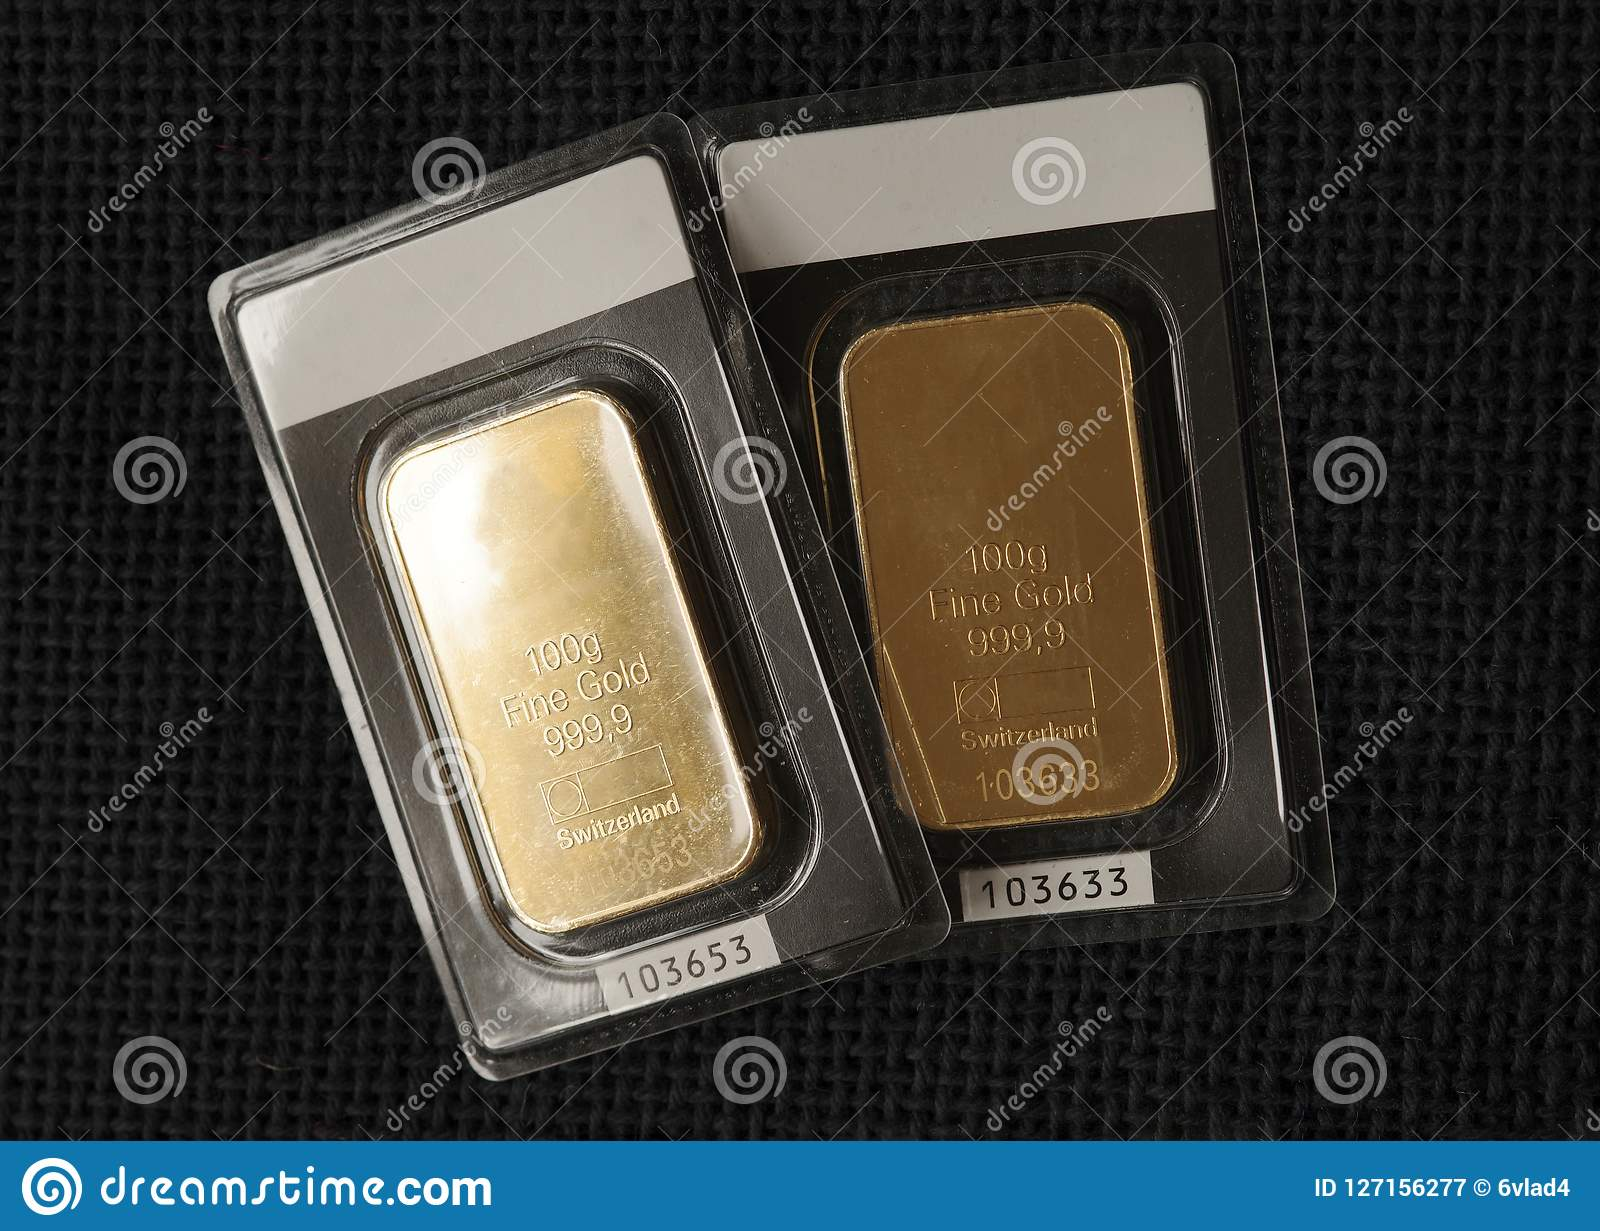 Two minted gold bars weighing 100 grams each against the background of a dark fabric texture